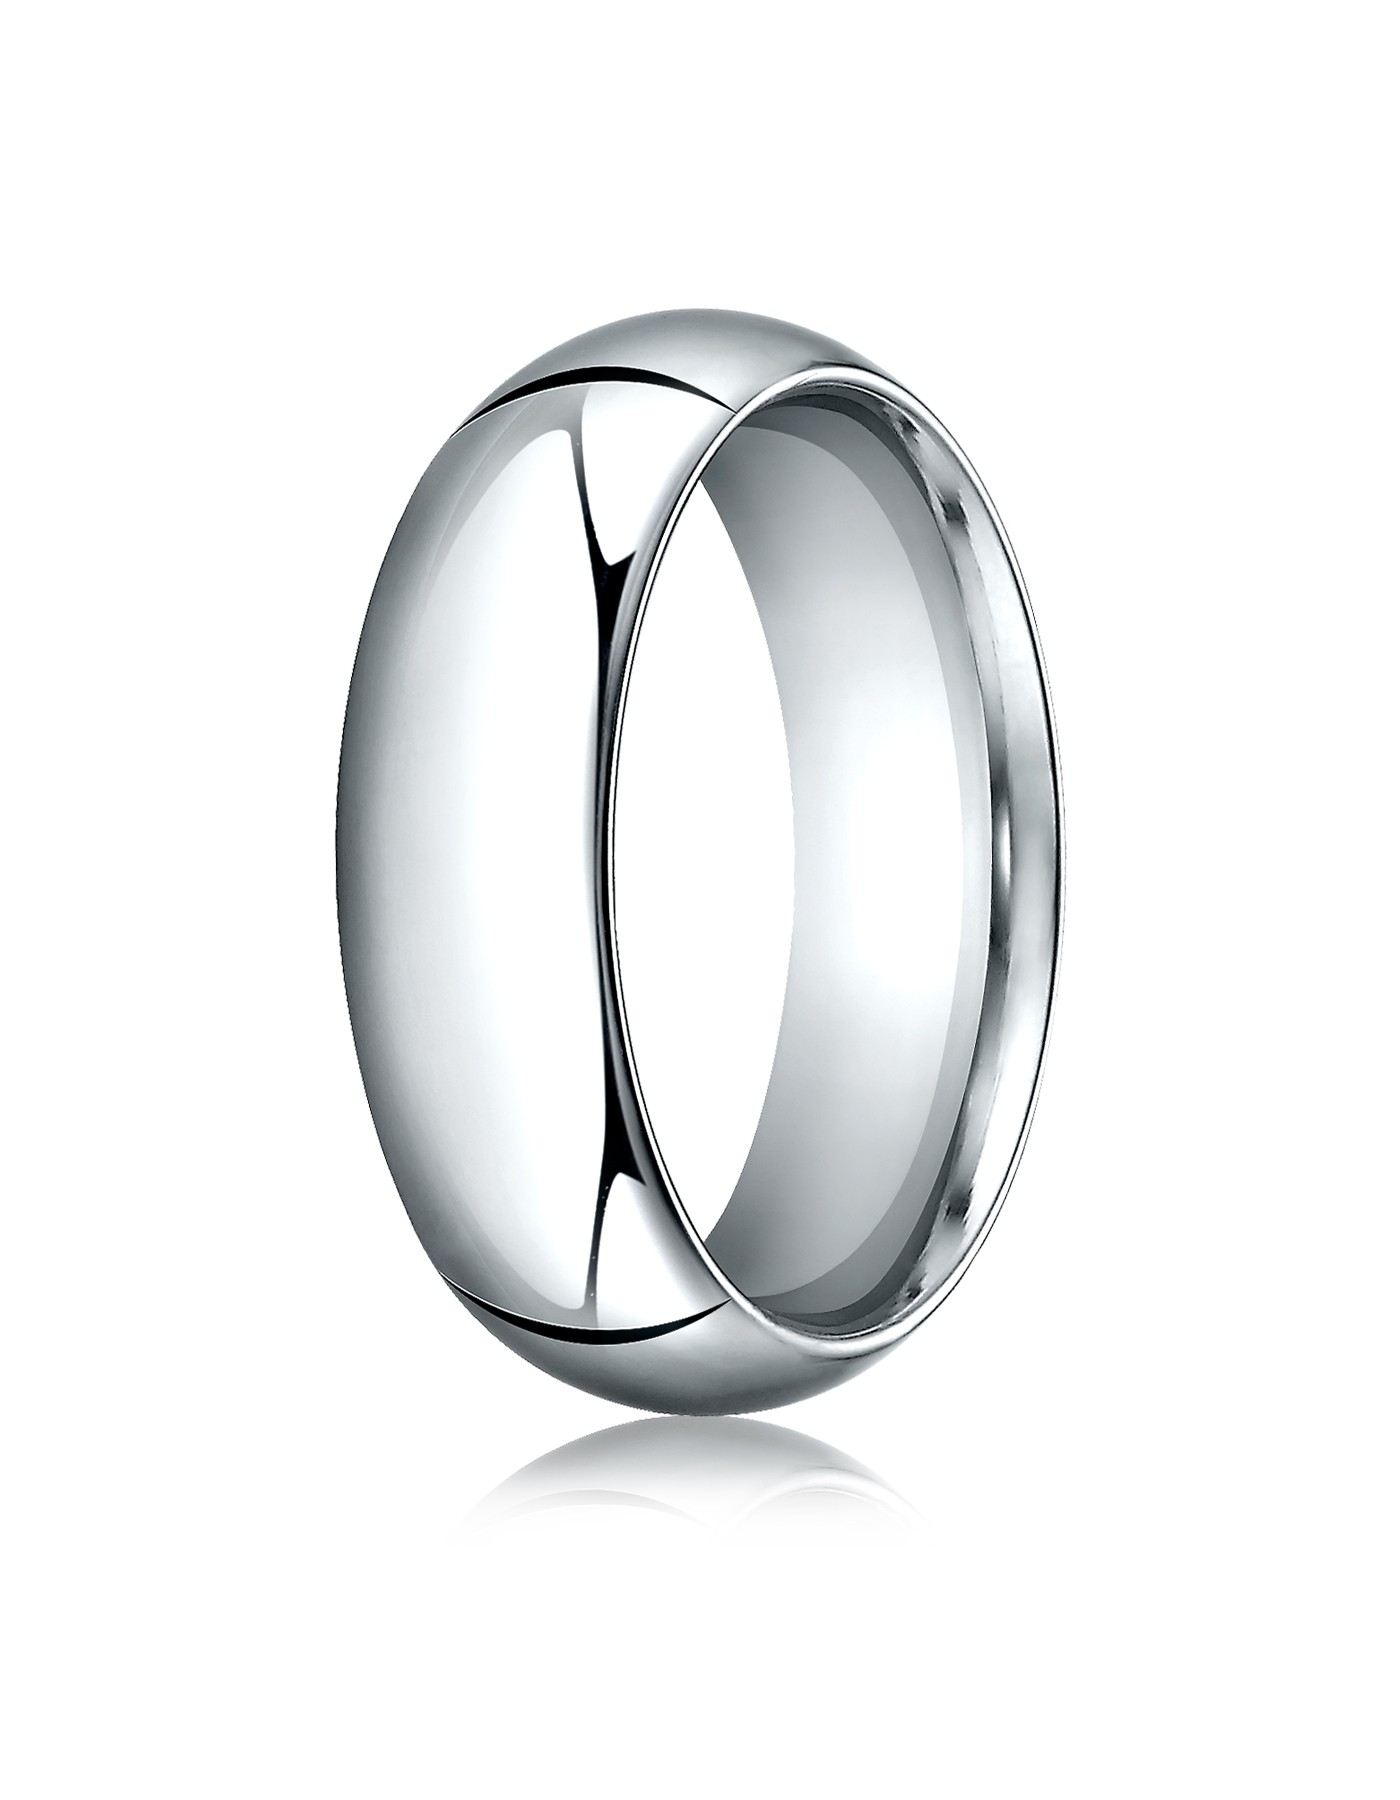 14k White Gold 7mm High Dome Comfort-fit Ring